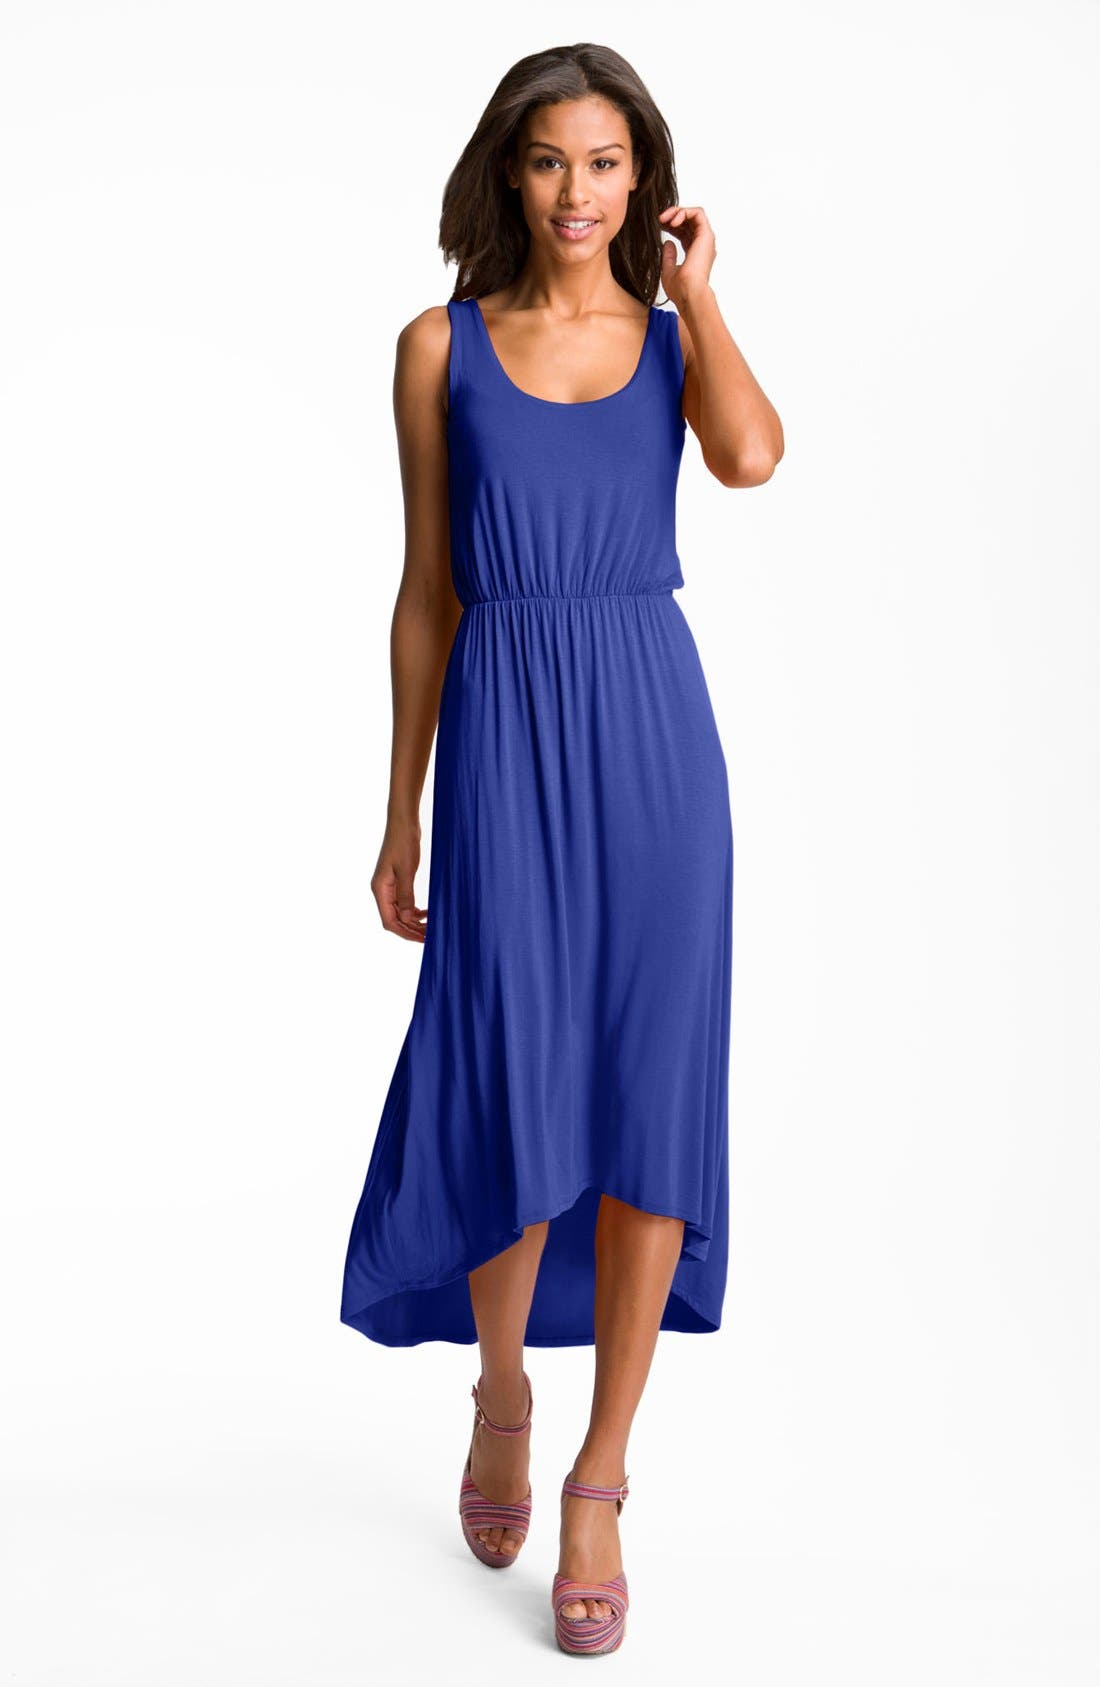 Alternate Image 1 Selected - Felicity & Coco High/Low Hem Jersey Tank Dress (Nordstrom Exclusive)